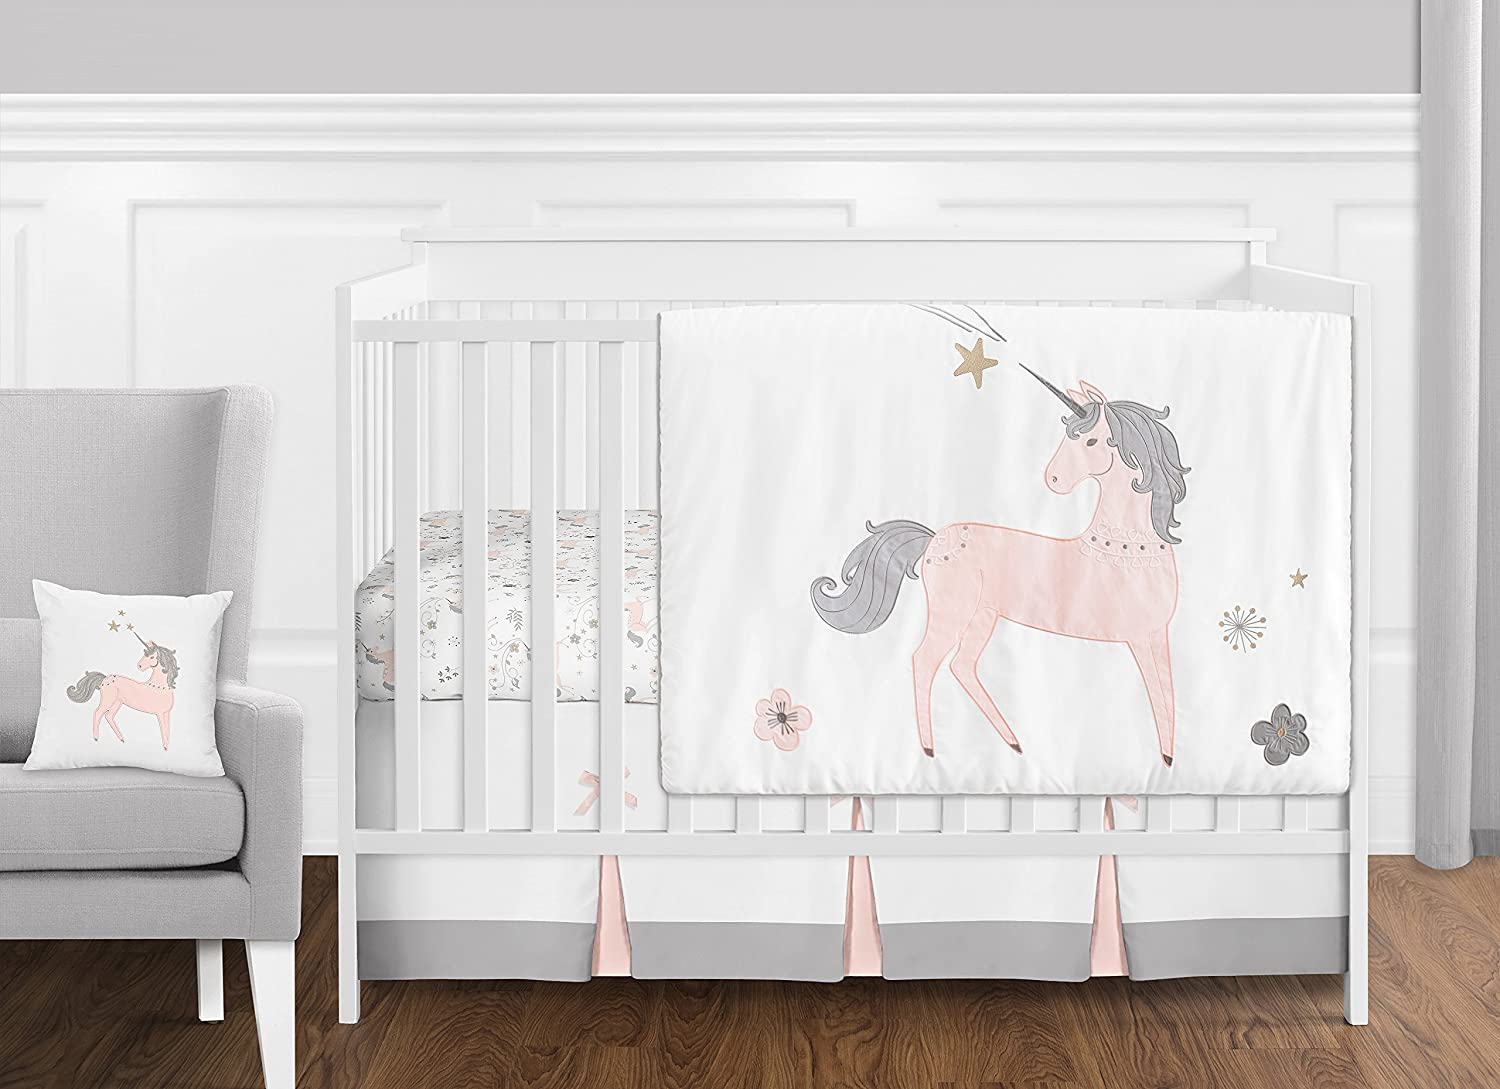 11 pc. Pink, Grey and Gold Unicorn Baby Girl Crib Bedding Set by Sweet Jojo Designs 91BX6Csl0uL._SL1500_